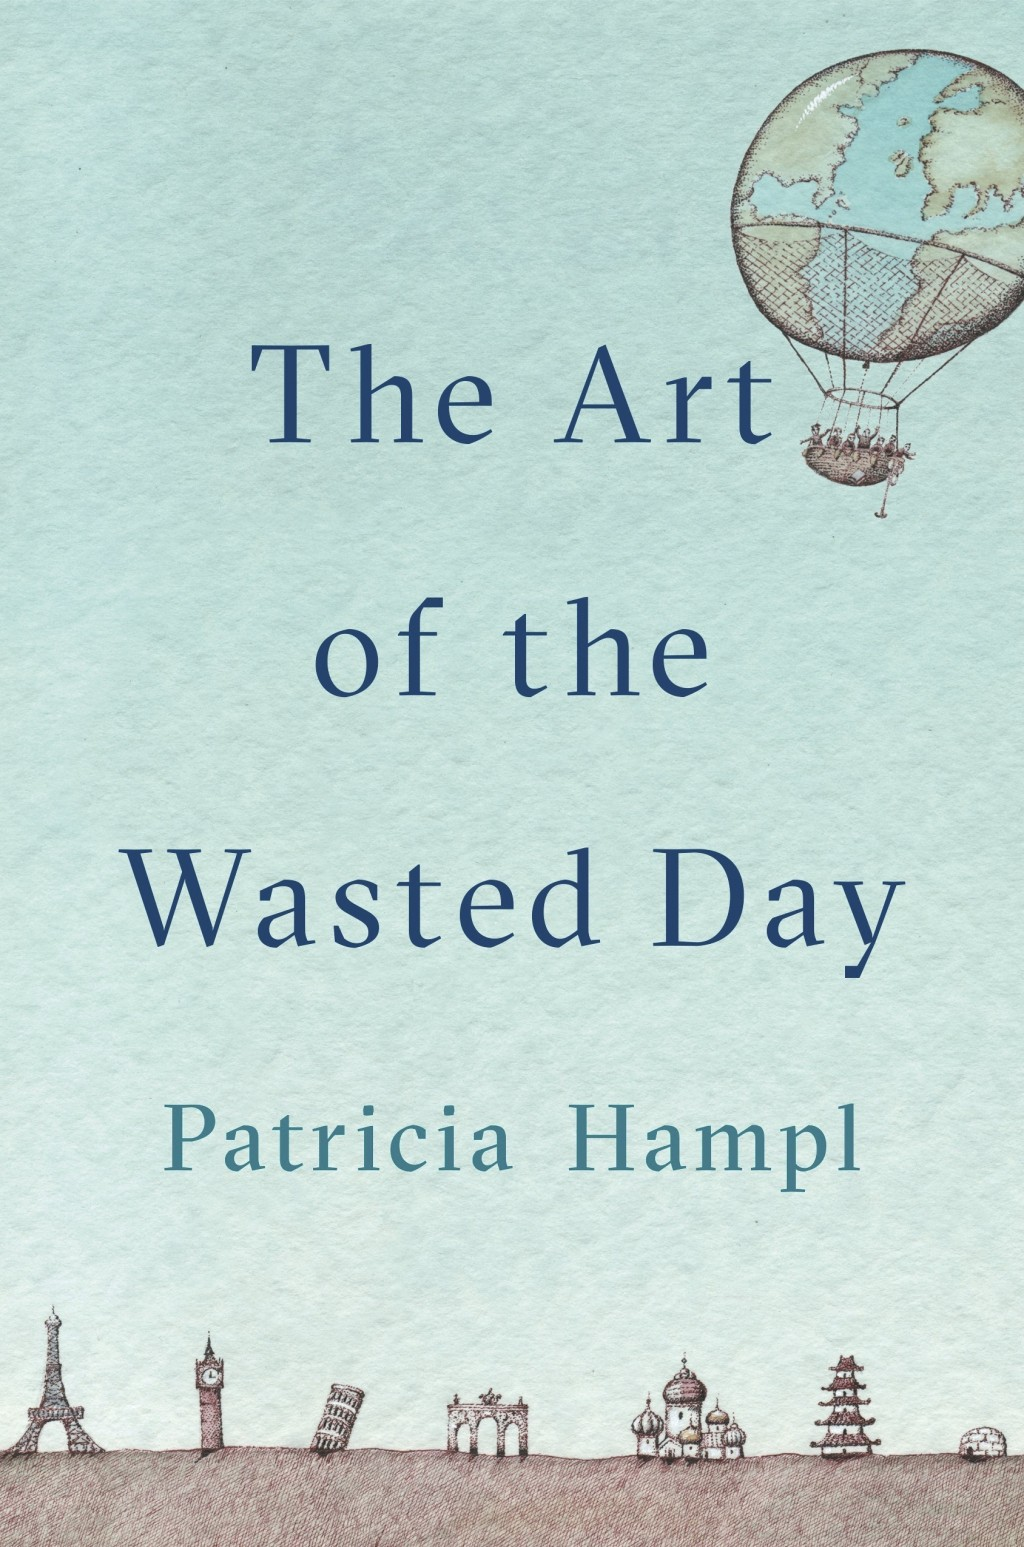 """This cover image released by Viking shows """"The Art of the Wasted day,"""" by Patricia Hampl. (Viking via AP)"""